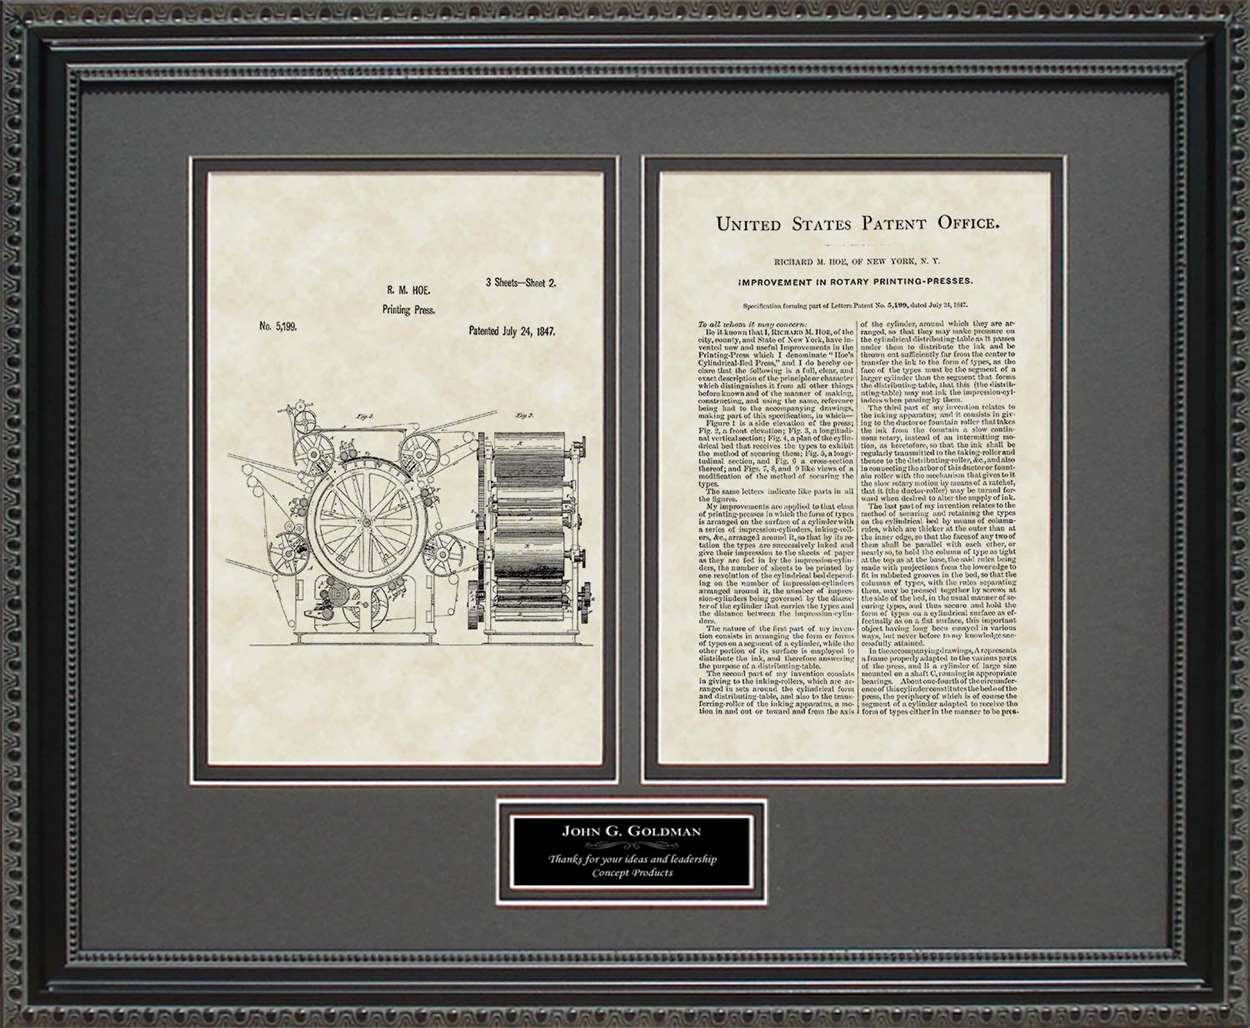 Personalized Printing Press Patent, Art & Copy, Hoe, 1847